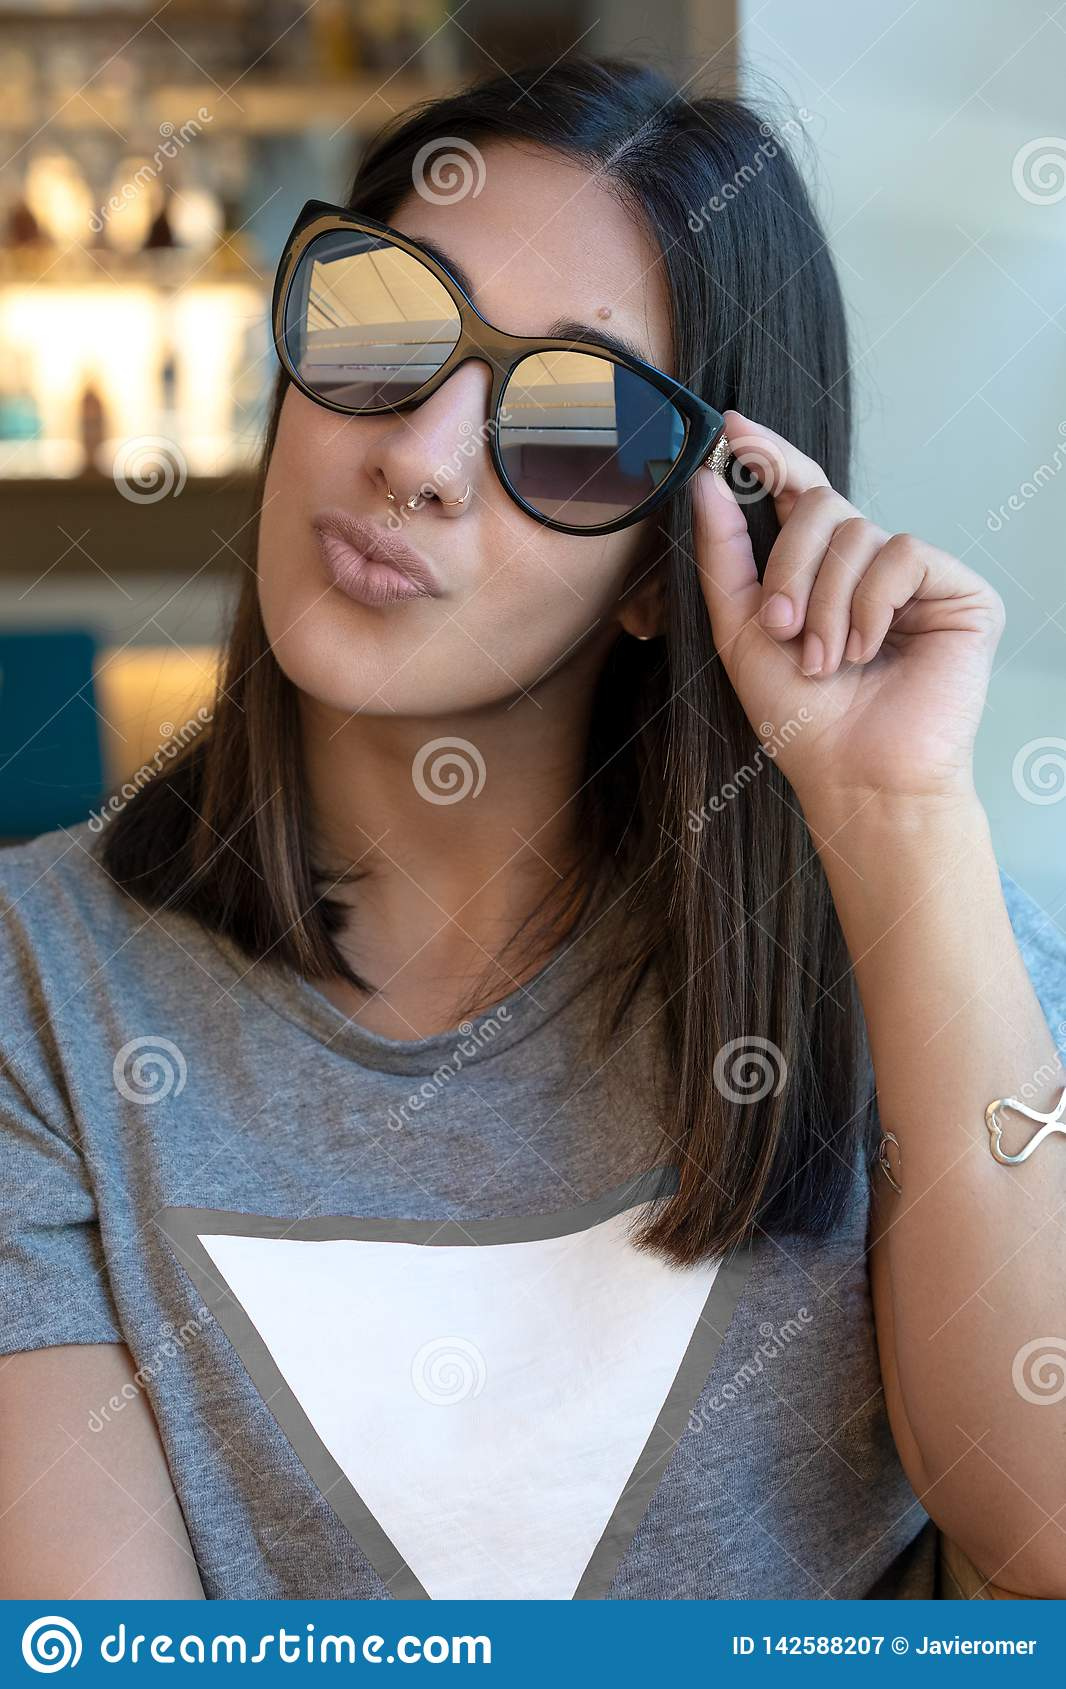 Sunglasses girl kissing at camera